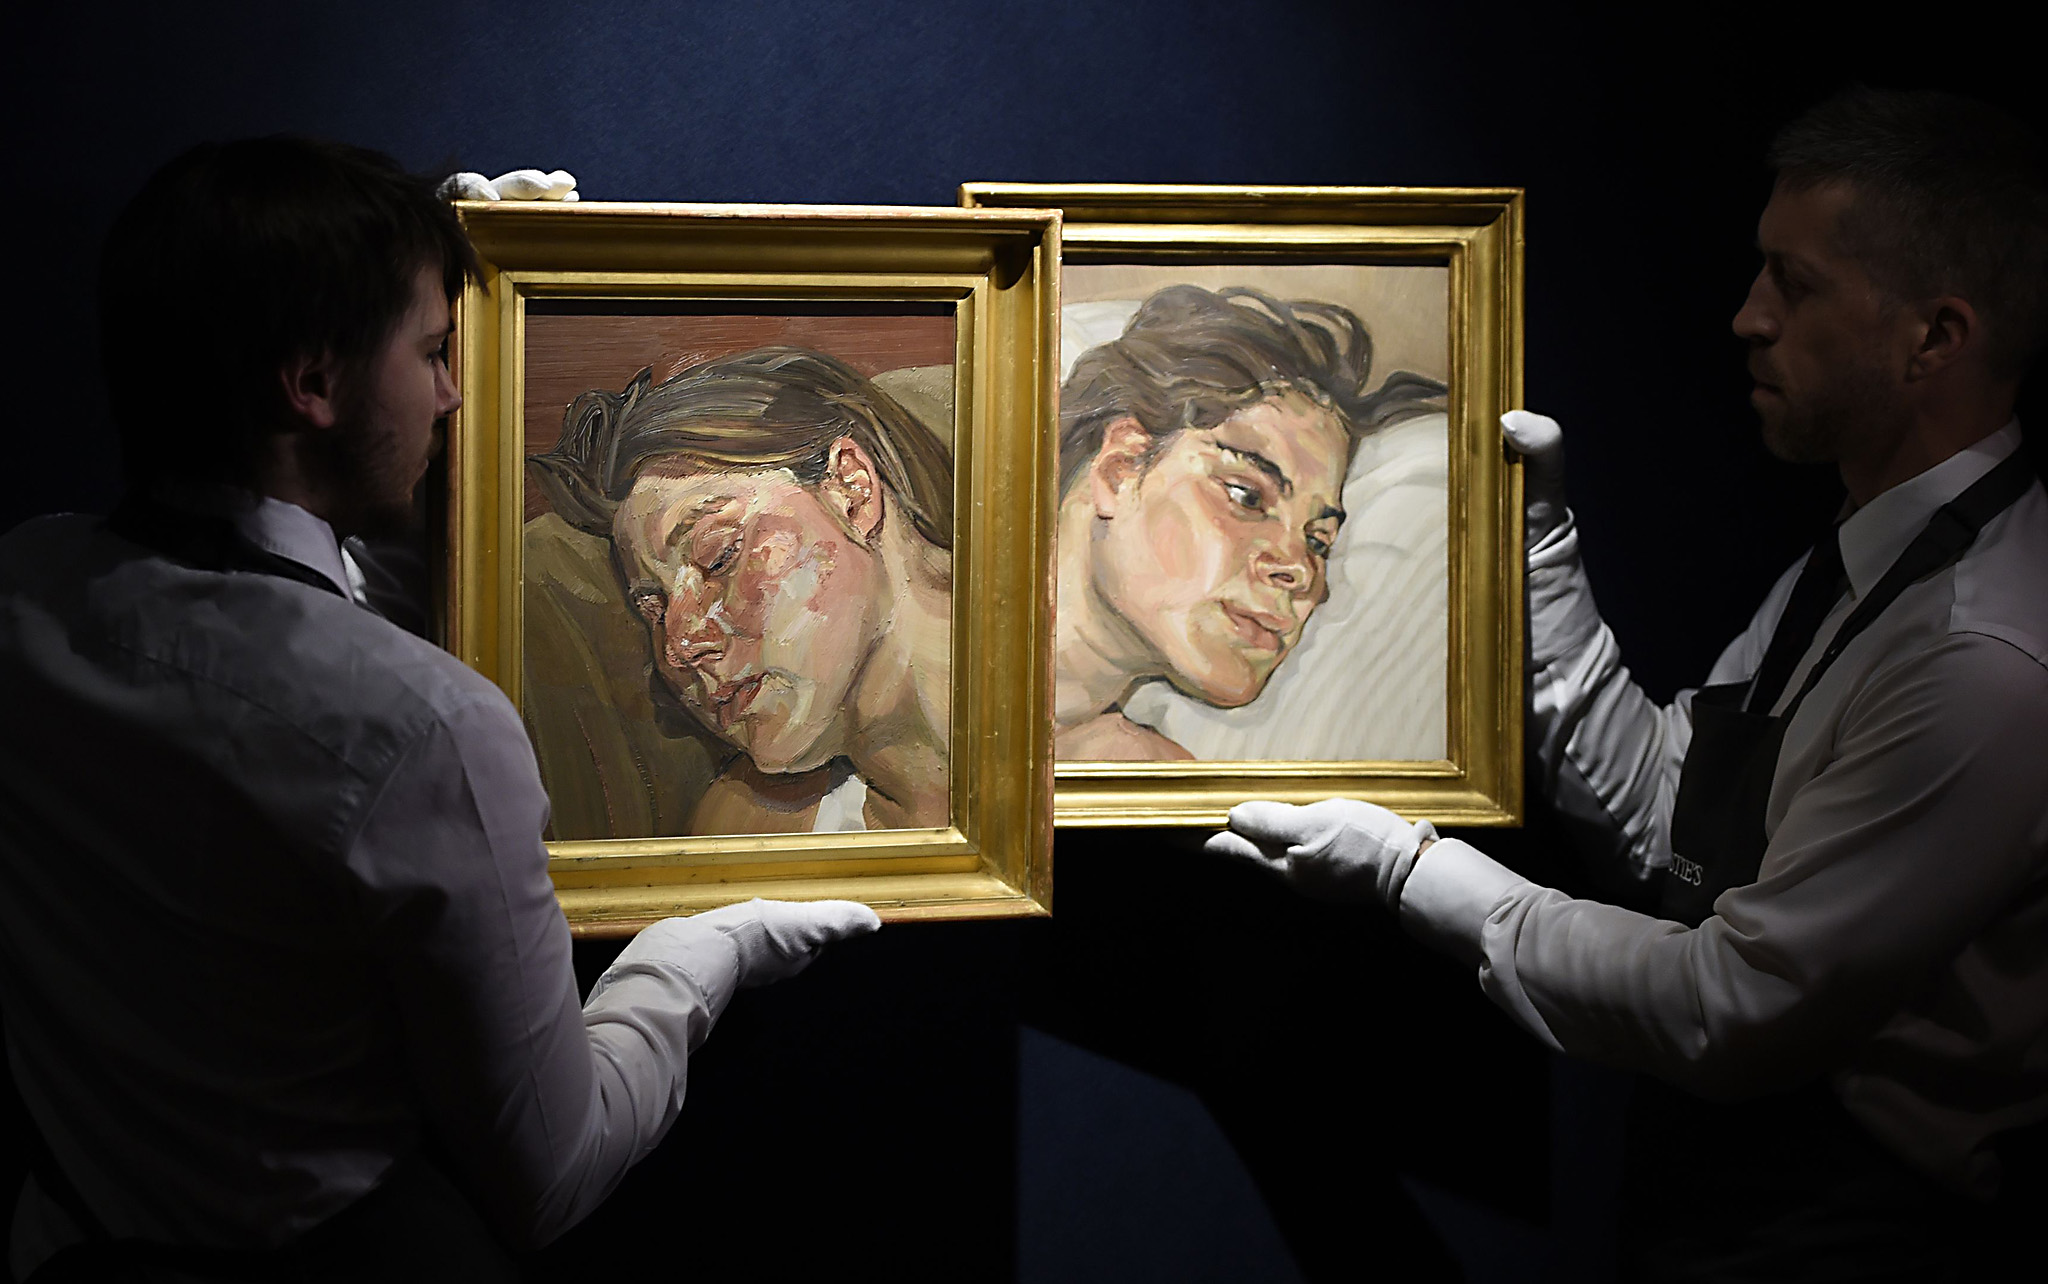 Post War and Contemporary Art sales - London...Christie's gallery assistants adjust Head of IB (left) and Head of Esther by Lucian Freud, during a press preview of their forthcoming Post War and Contemporary Art sales at Christie's in London. PRESS ASSOCIATION Photo. Picture date: Friday February 5, 2016. Photo credit should read: Lauren Hurley/PA Wire